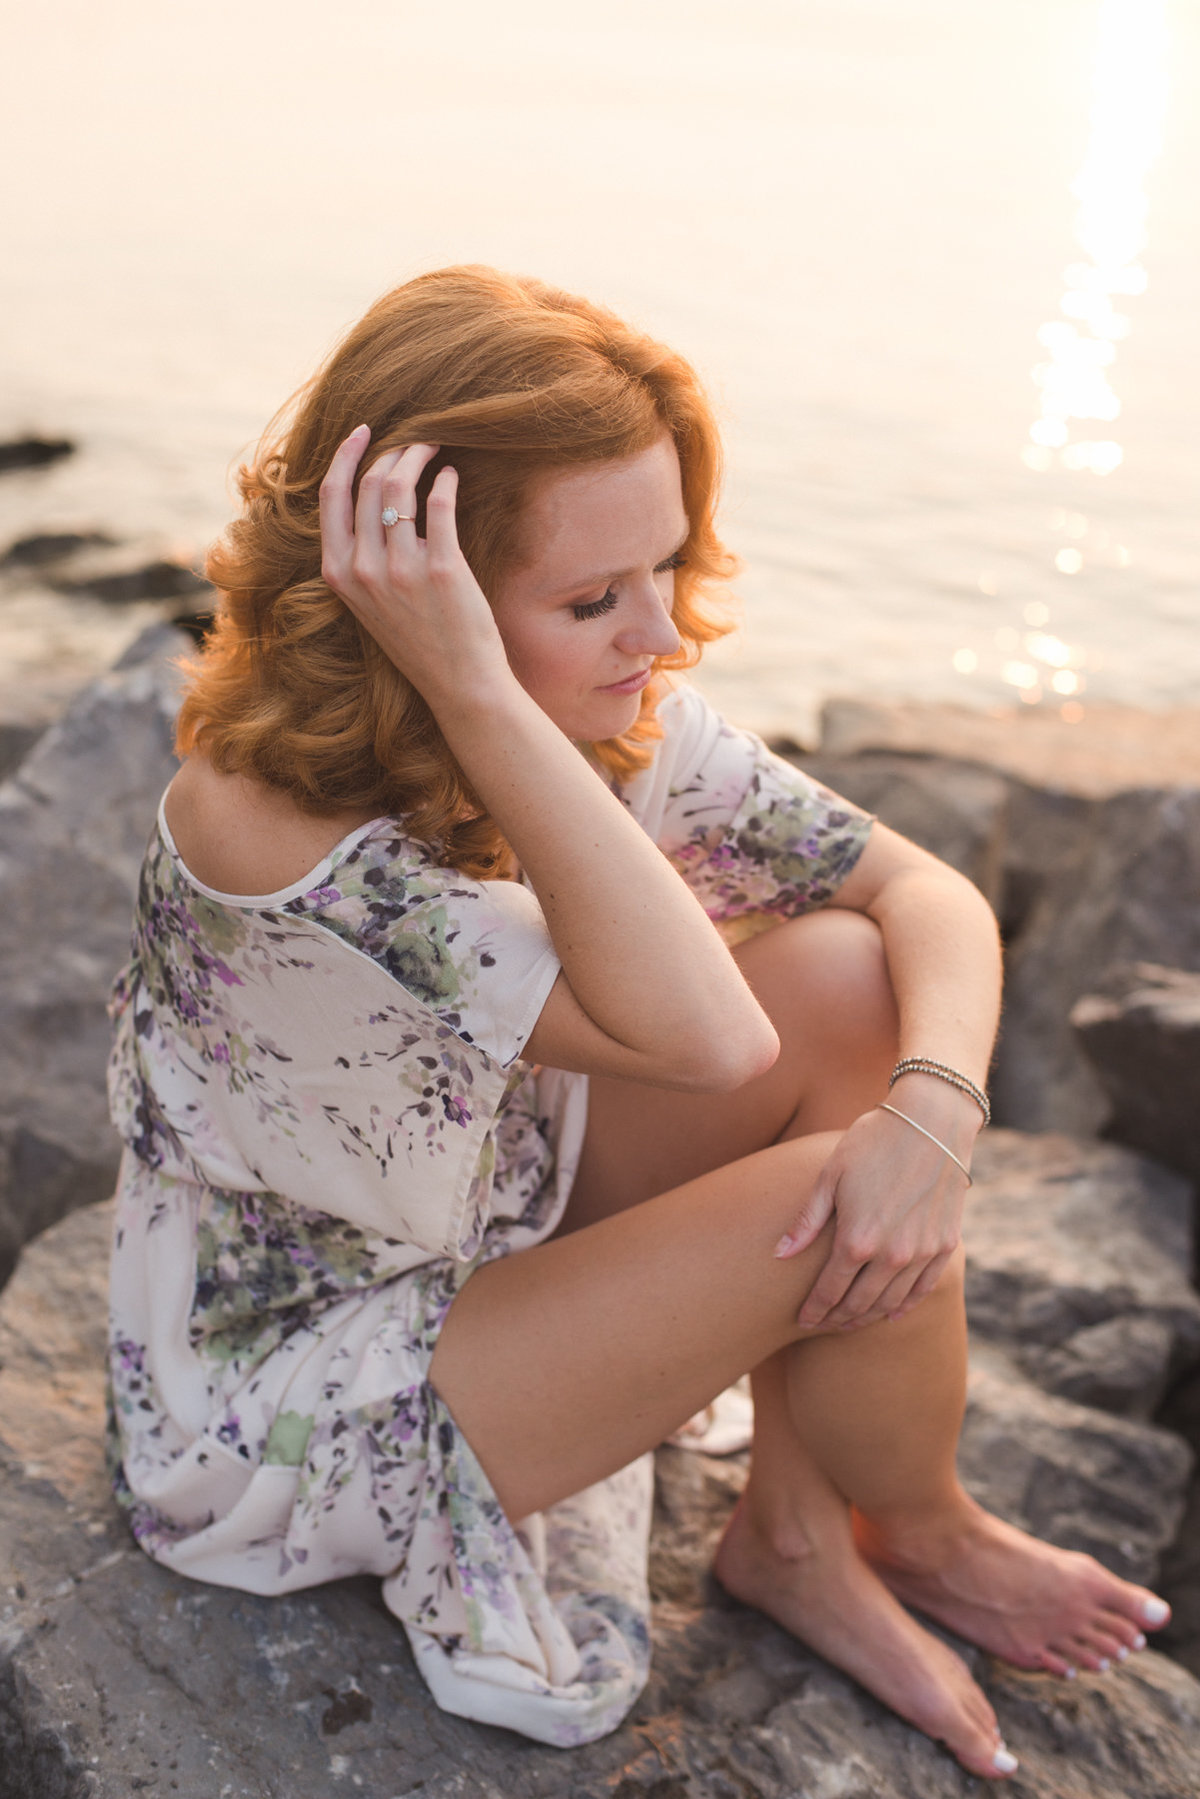 redheaded girl sitting on rocks by the water at sunset